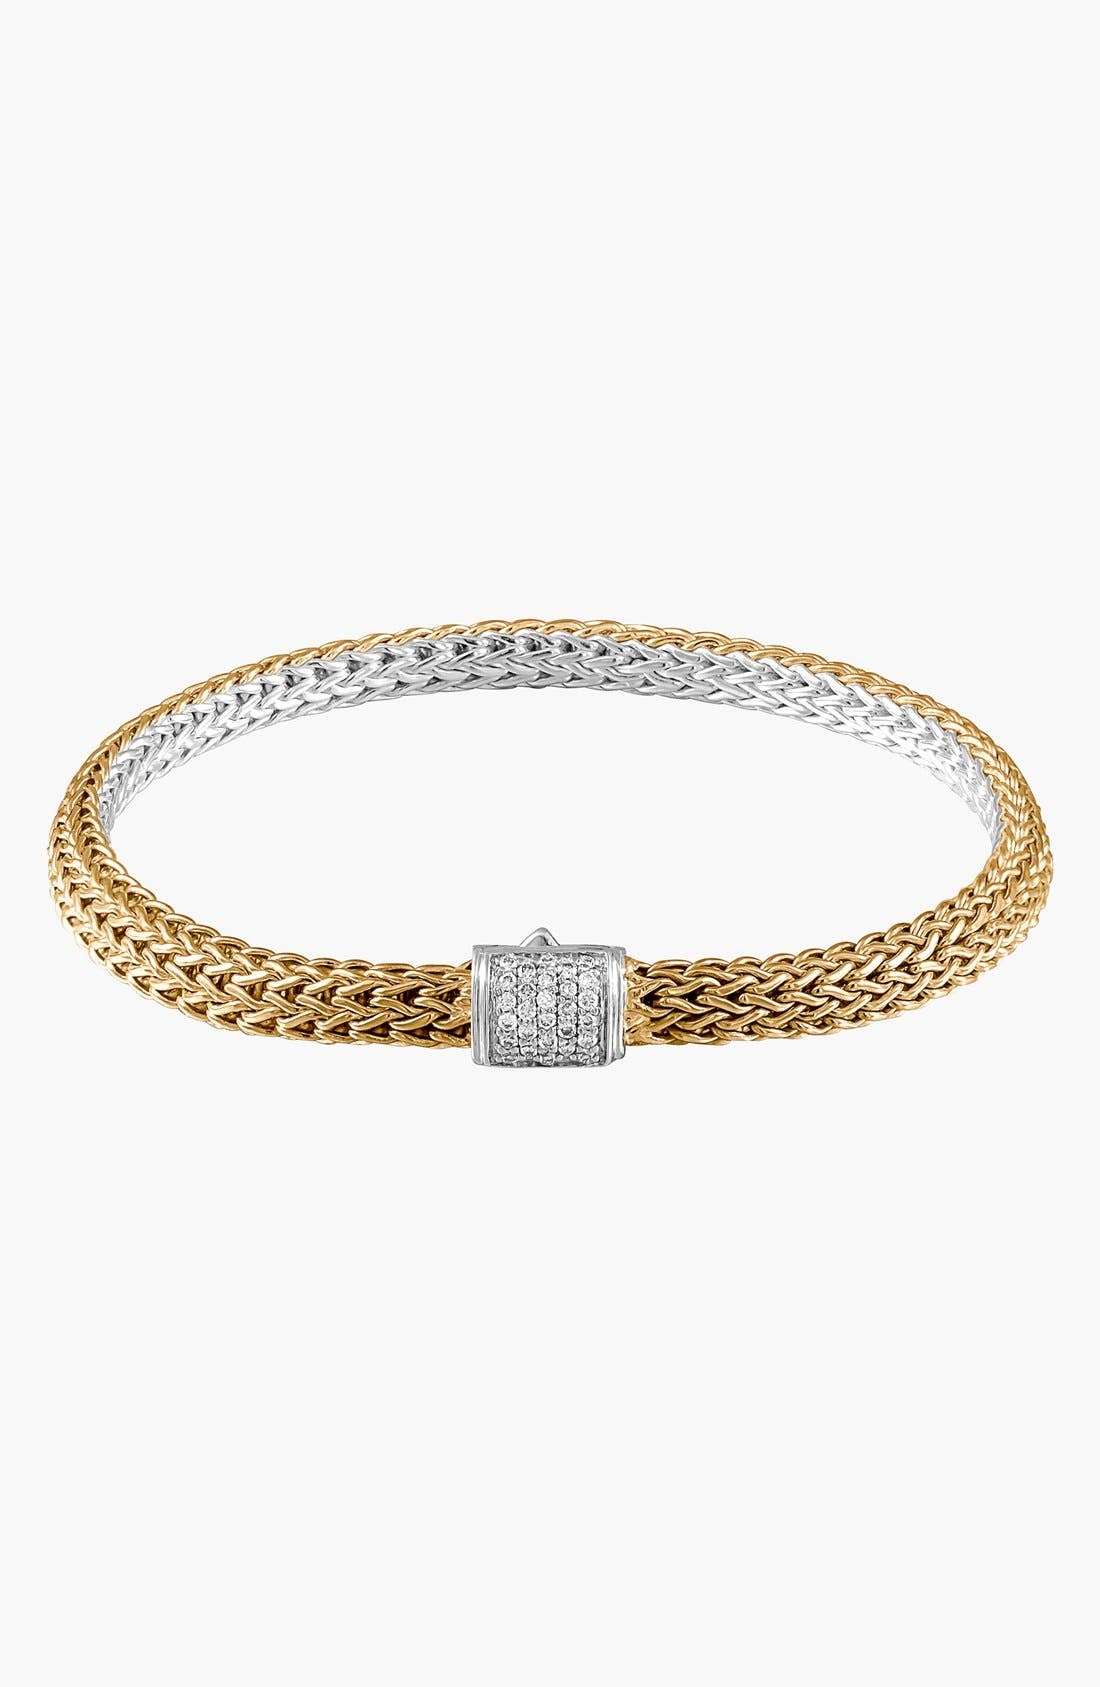 'Classic Chain' Extra Small Bracelet,                         Main,                         color, Gold/ Silver/ Diamond